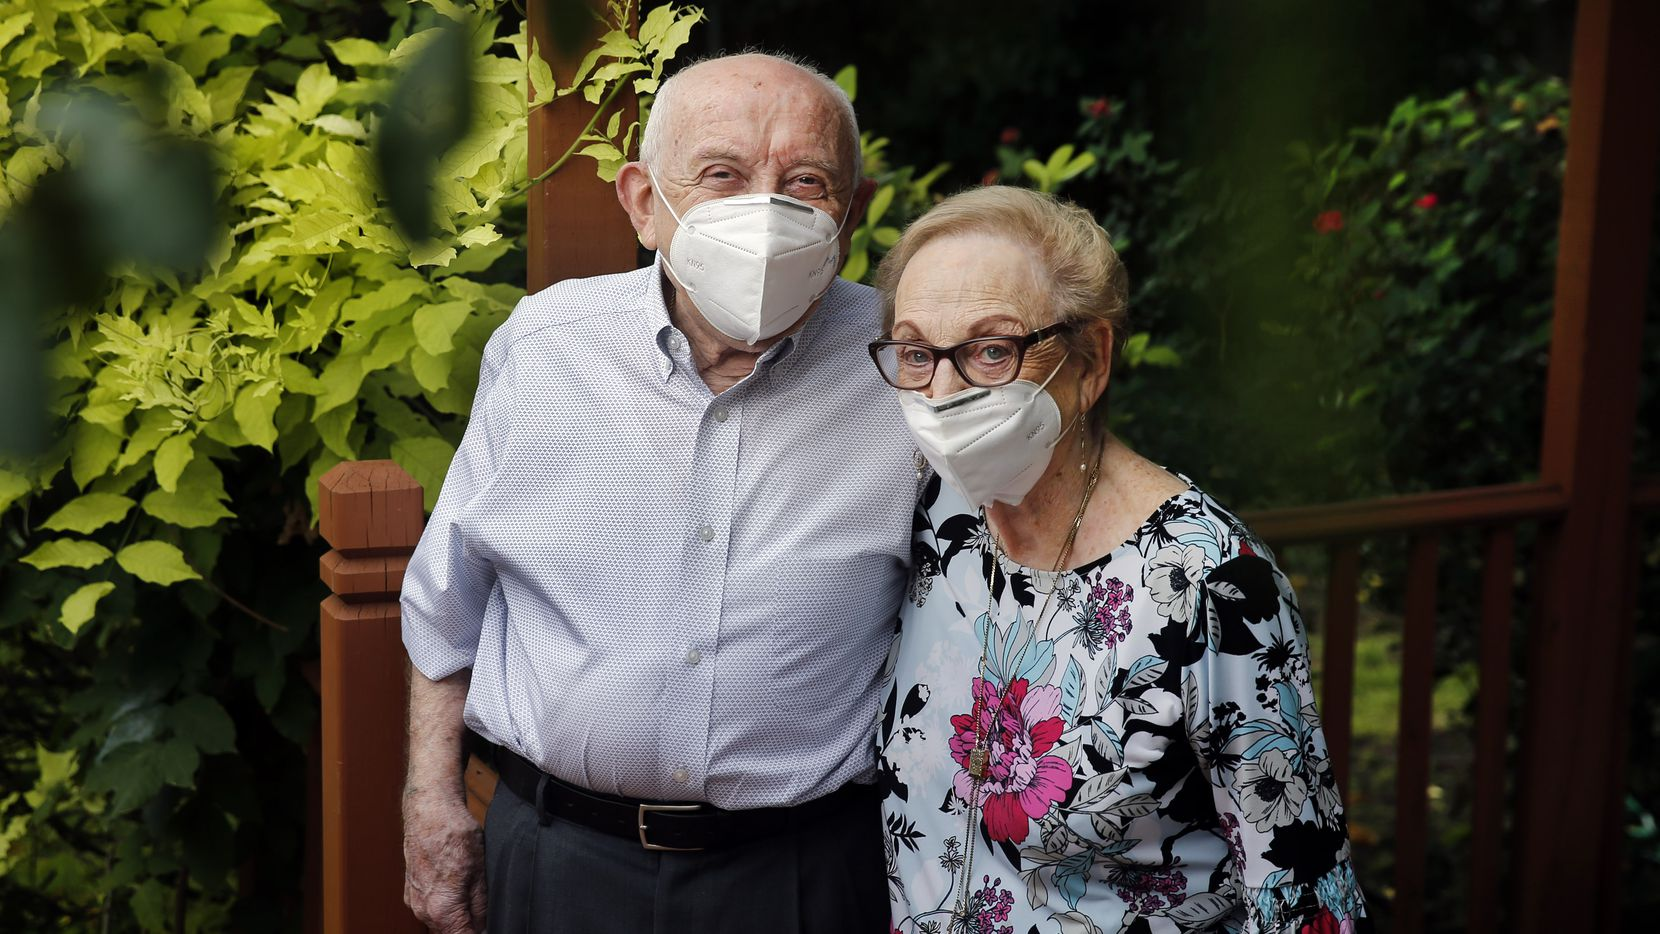 Holocaust survivor Max Glauben and his wife, Frieda, are photographed outside their Dallas home on Aug. 4, 2020.